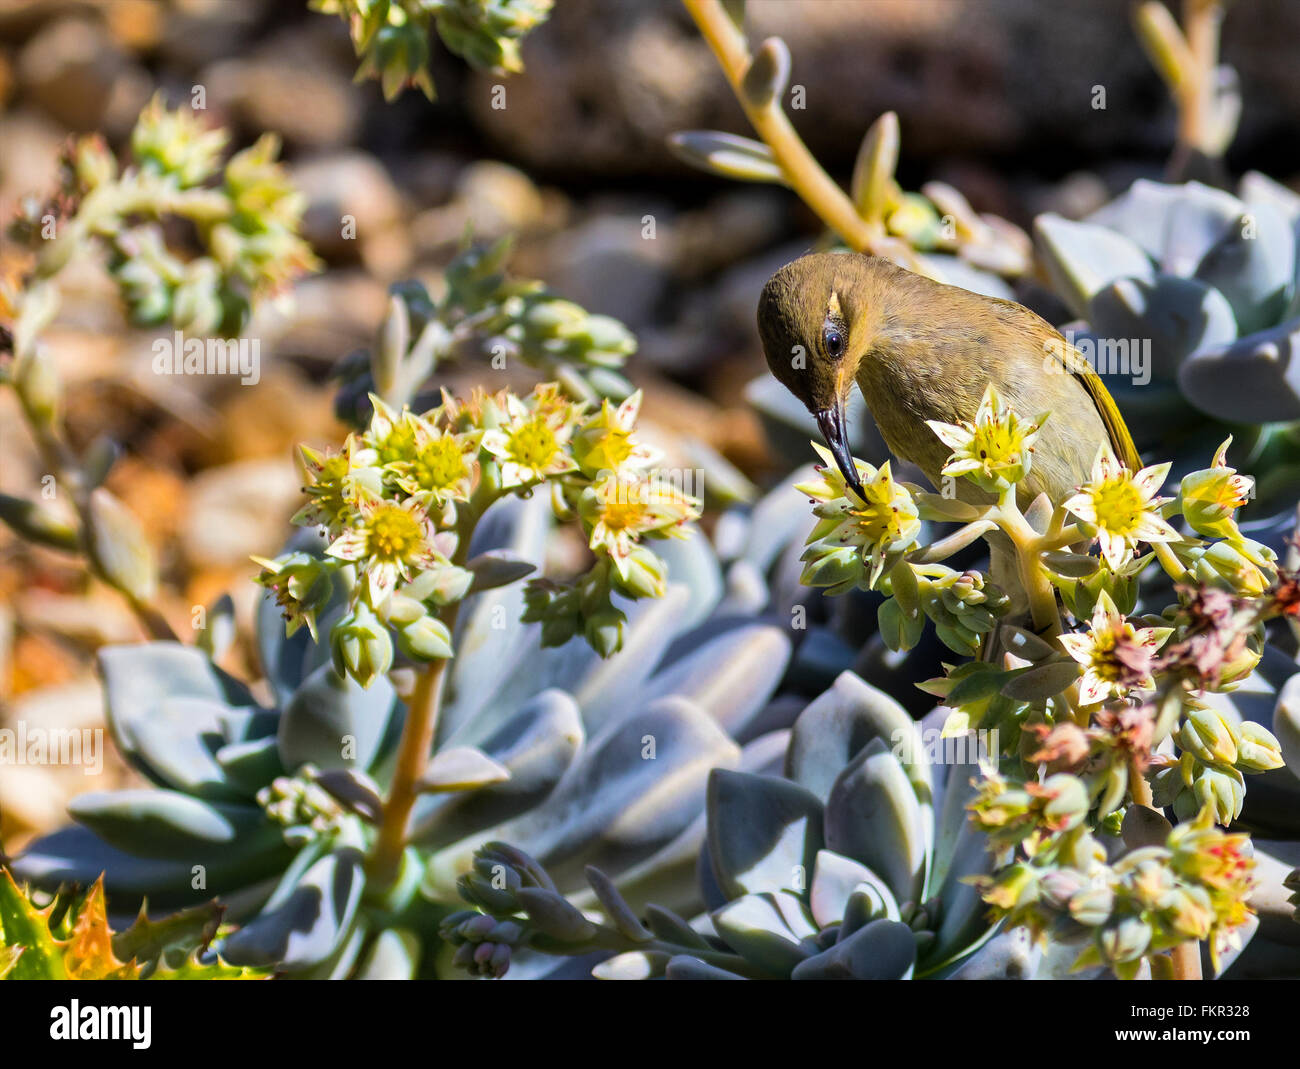 Australian brown honeyeater bird feeding on nectar from a succulent flower - Stock Image